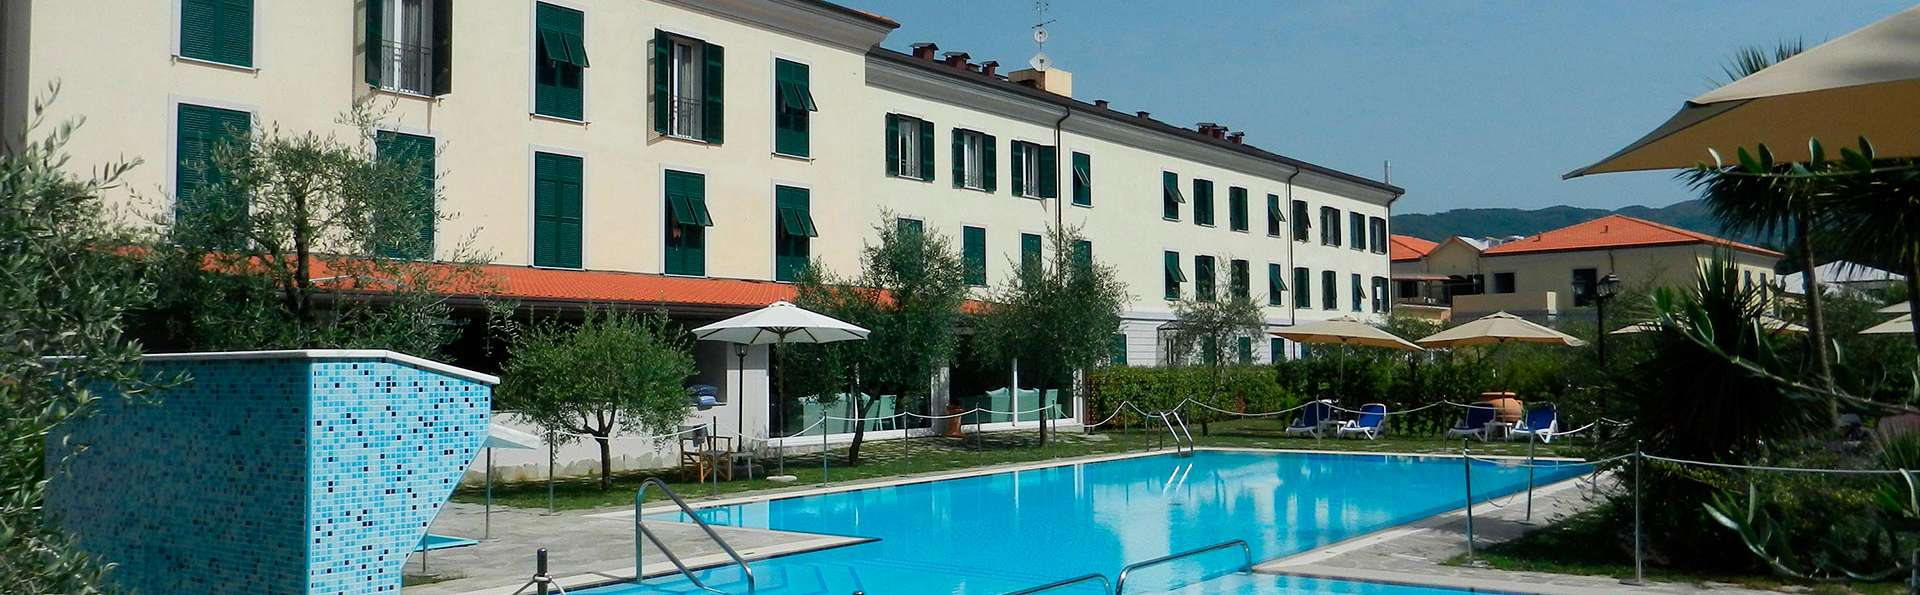 Santa Caterina Park Hotel - edit_front_pool.jpg